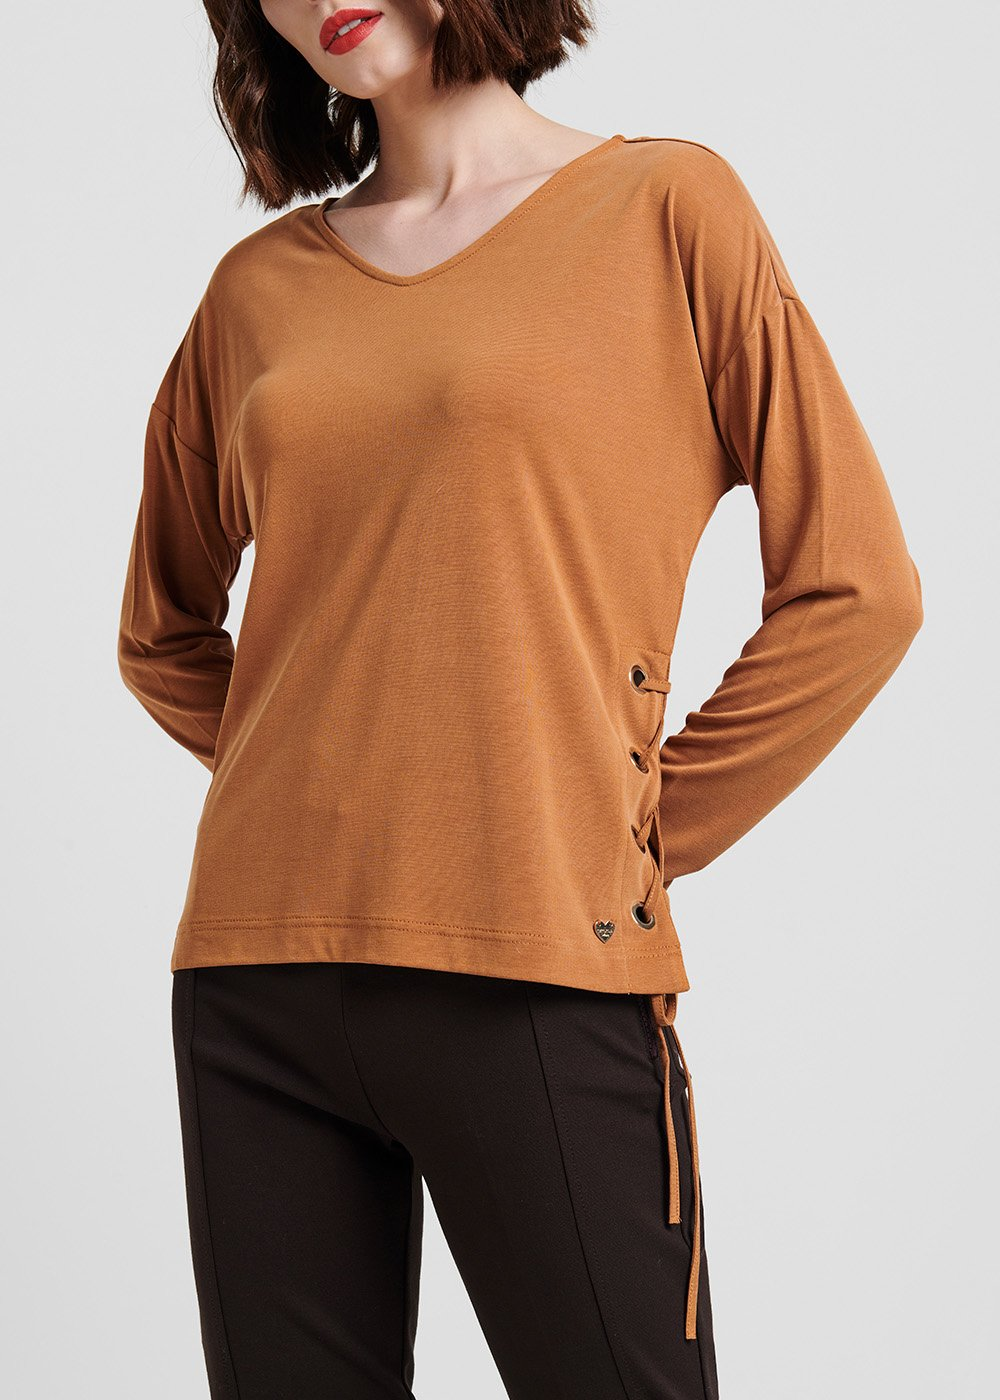 V-neck Shery T-shirt - Sughero - Woman